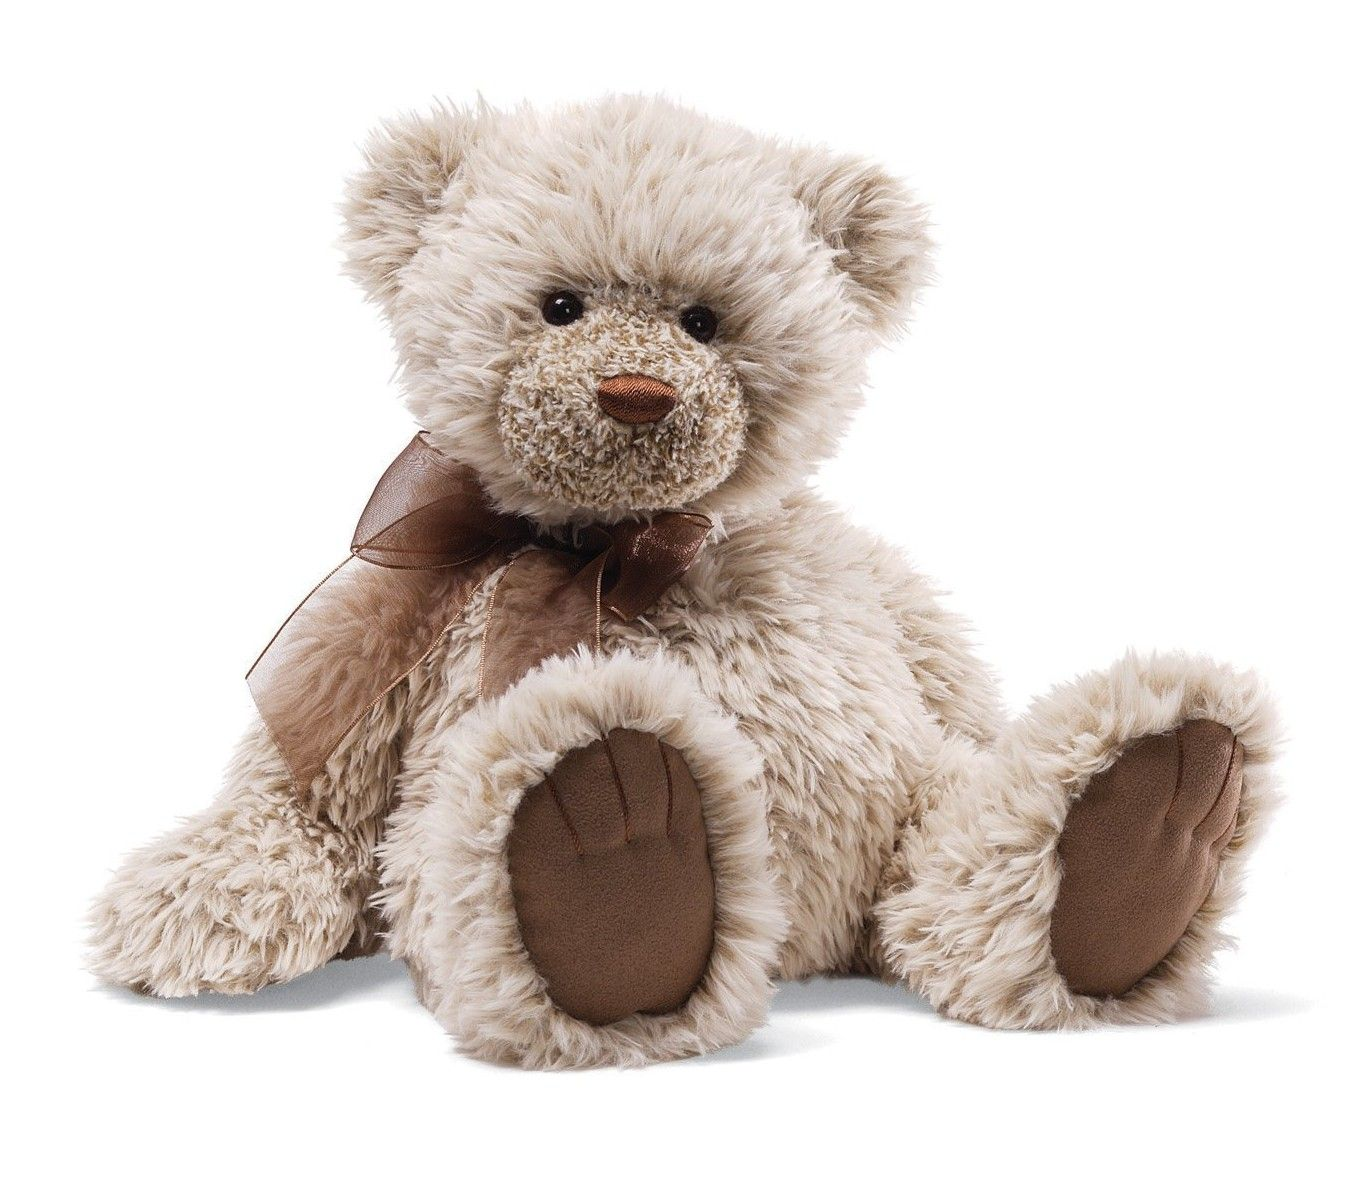 Funny Teddy Bears Teddy Bear Funny Blog Collection Pictures And Memes Osos De Peluche Osos Peluches [ 1177 x 1372 Pixel ]